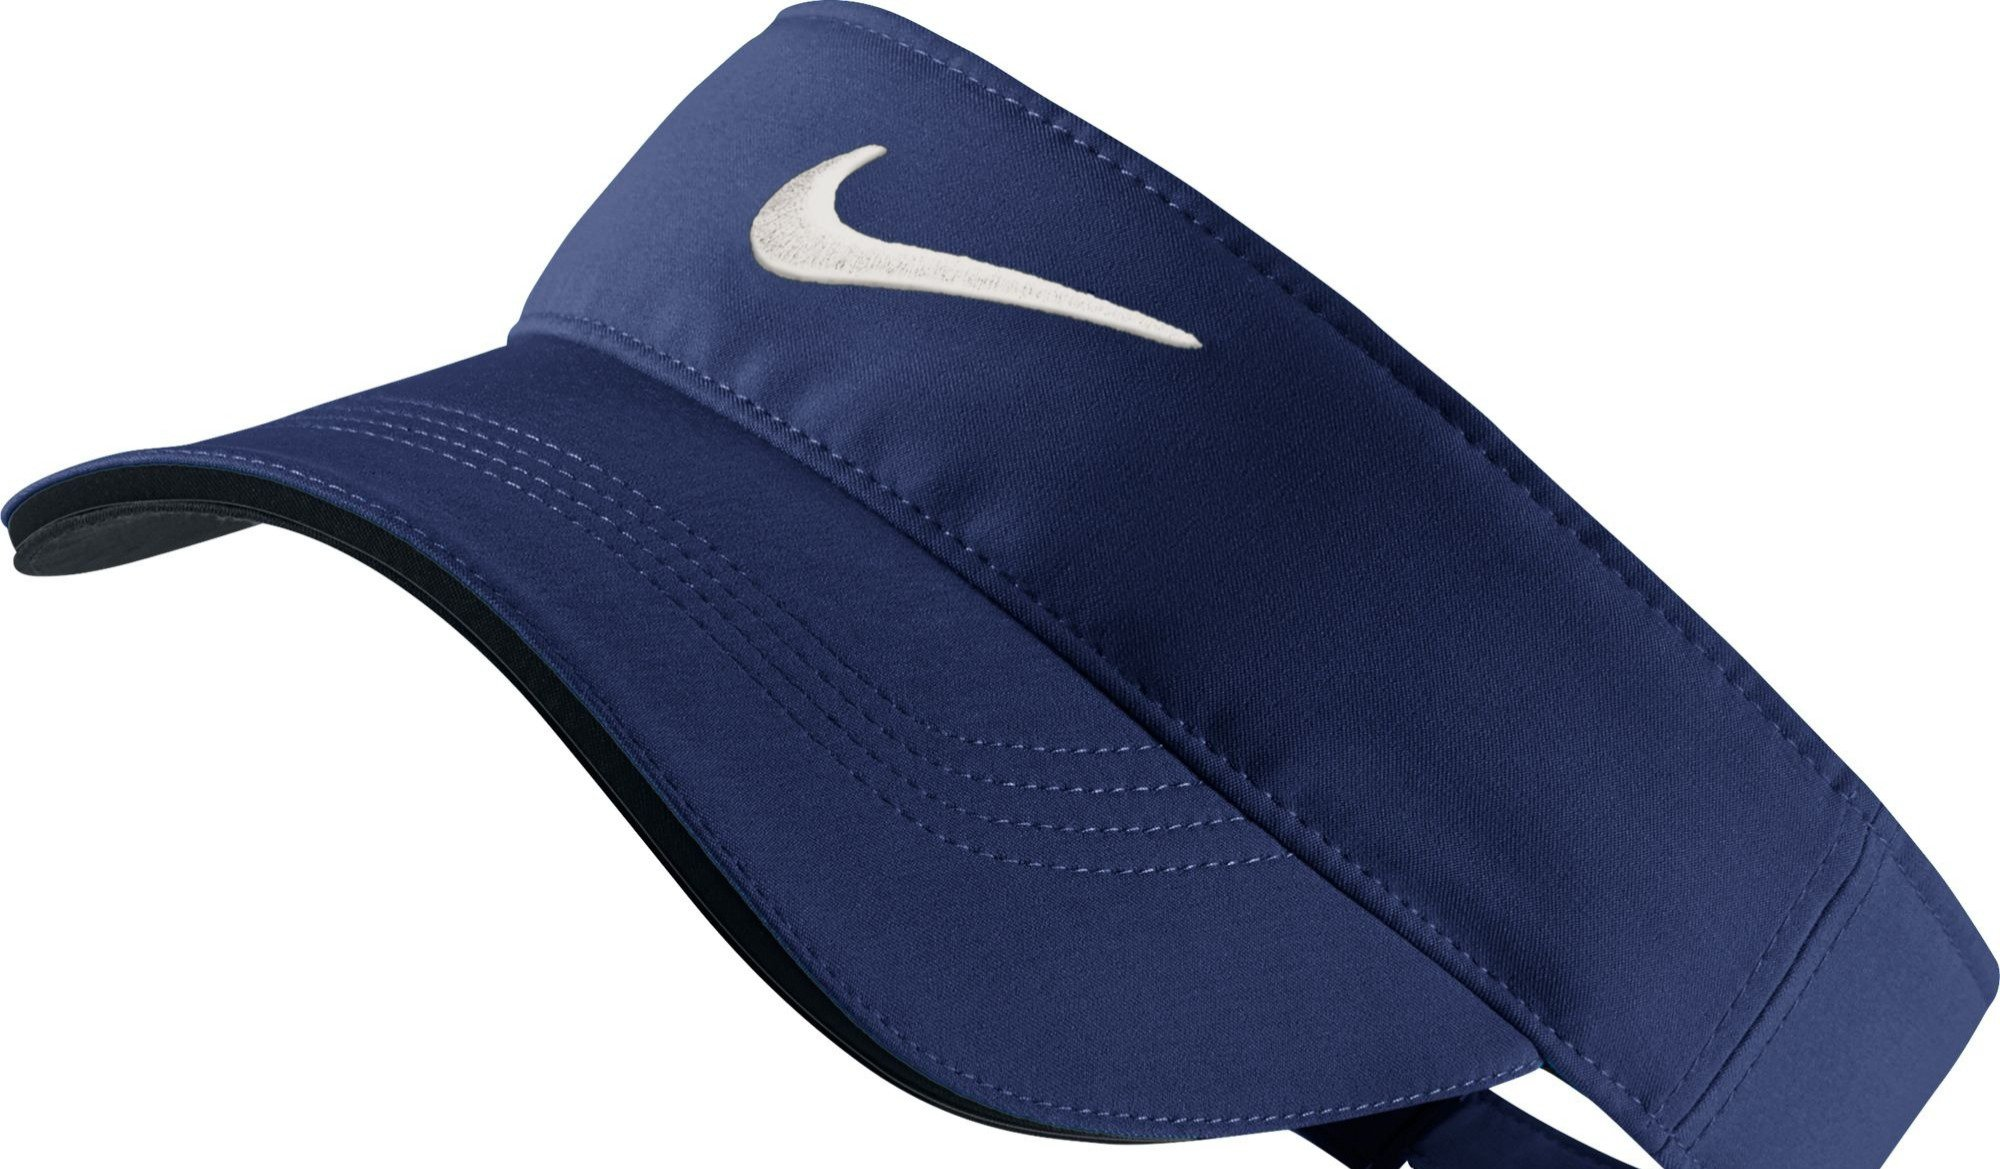 A perfect golf visor